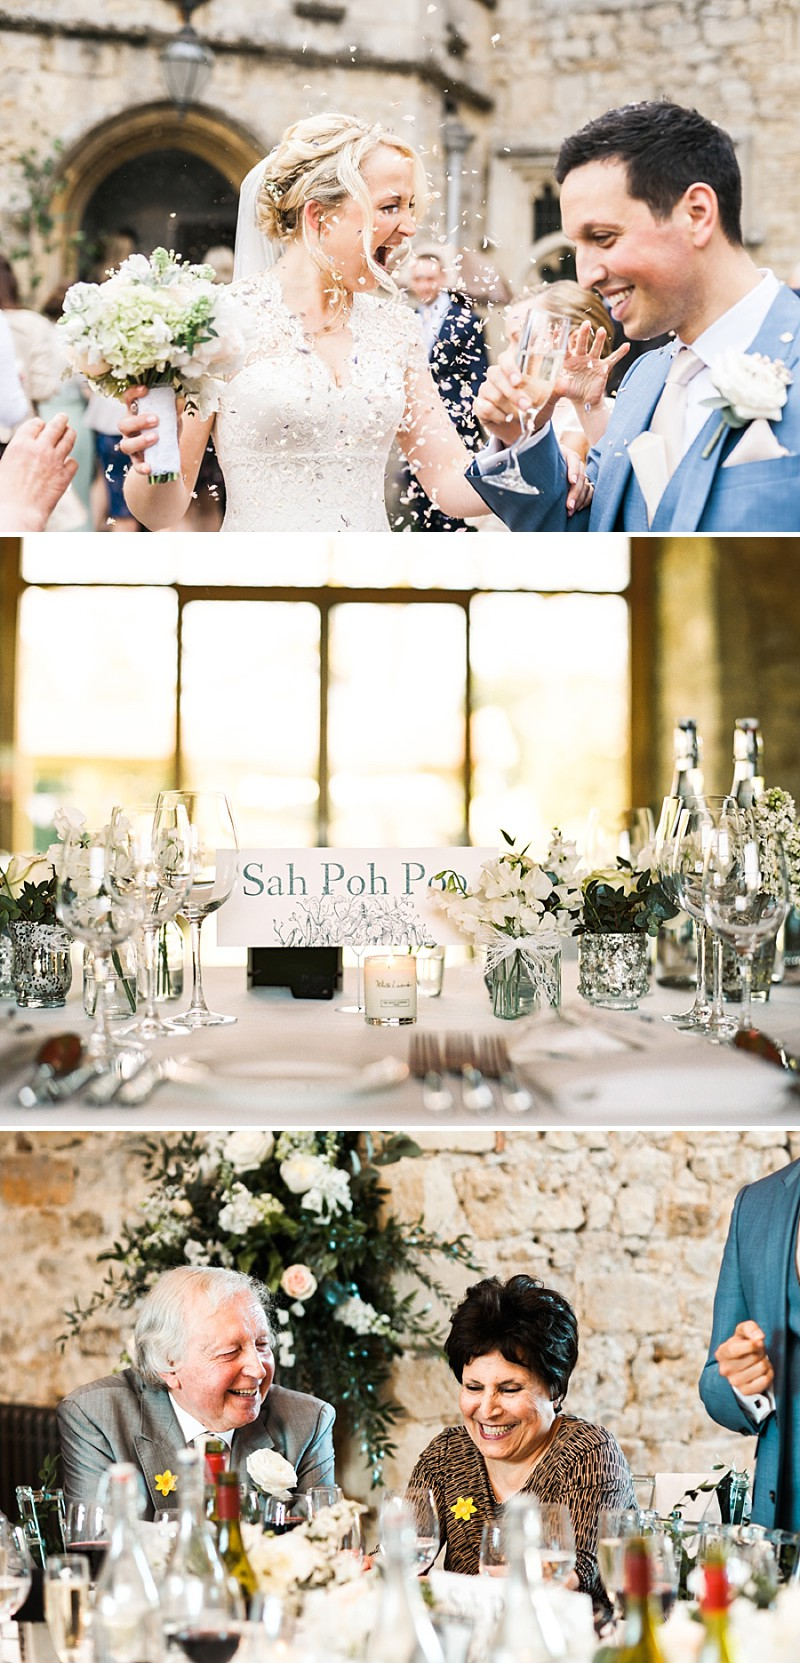 A Spring wedding at Notley Abbey with a bride in Captivating by Suzanne Neville and photography by Ann-Kathrin Koch_0263